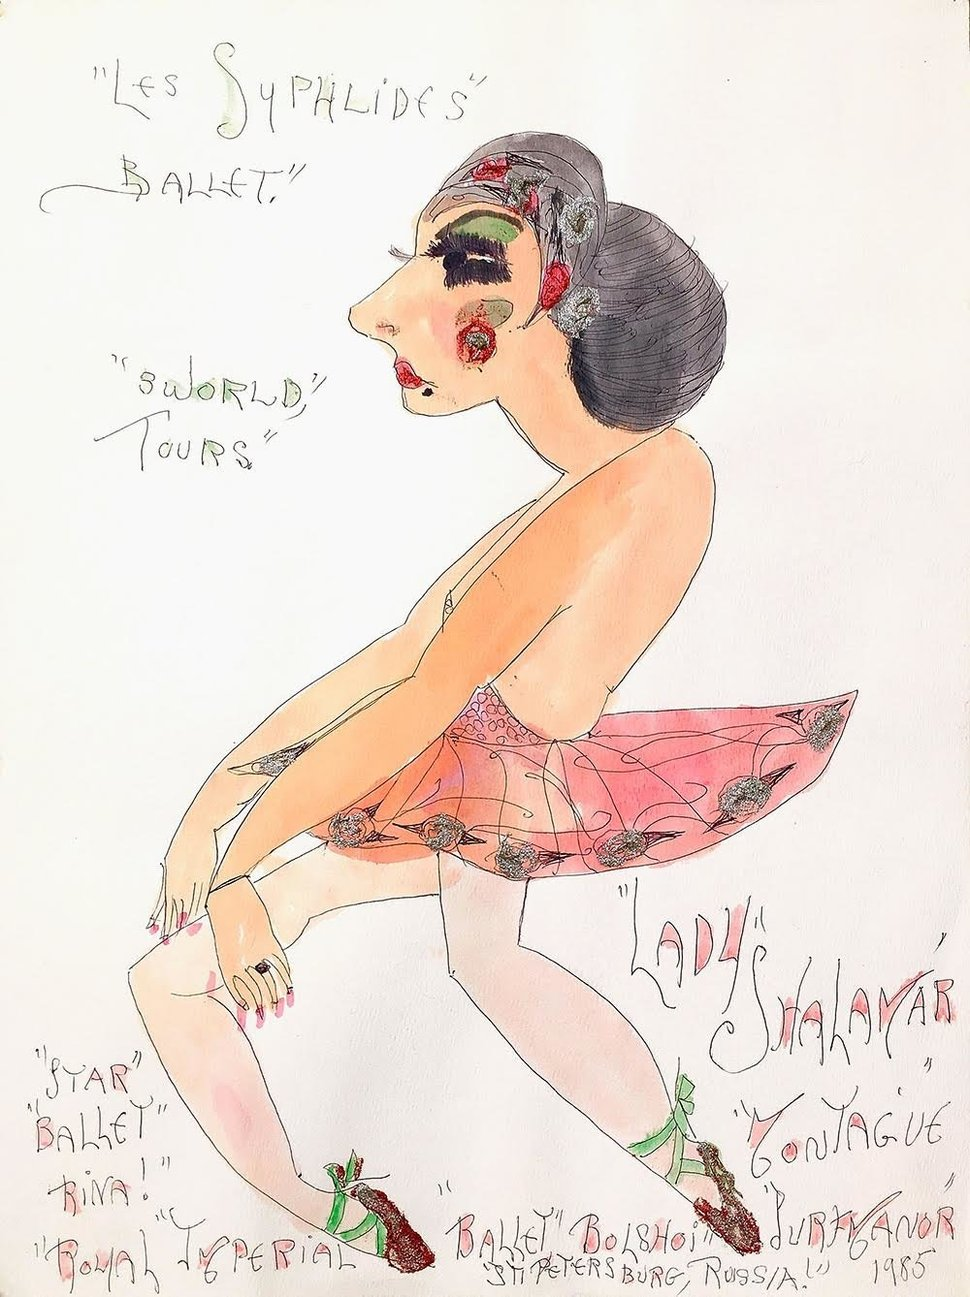 "Lady Shalimar Frances Montague, ""Les Sylphildes Ballet 3 World Tours Star Balletrina"" 1985 watercolor ballpoint glitter on paper"